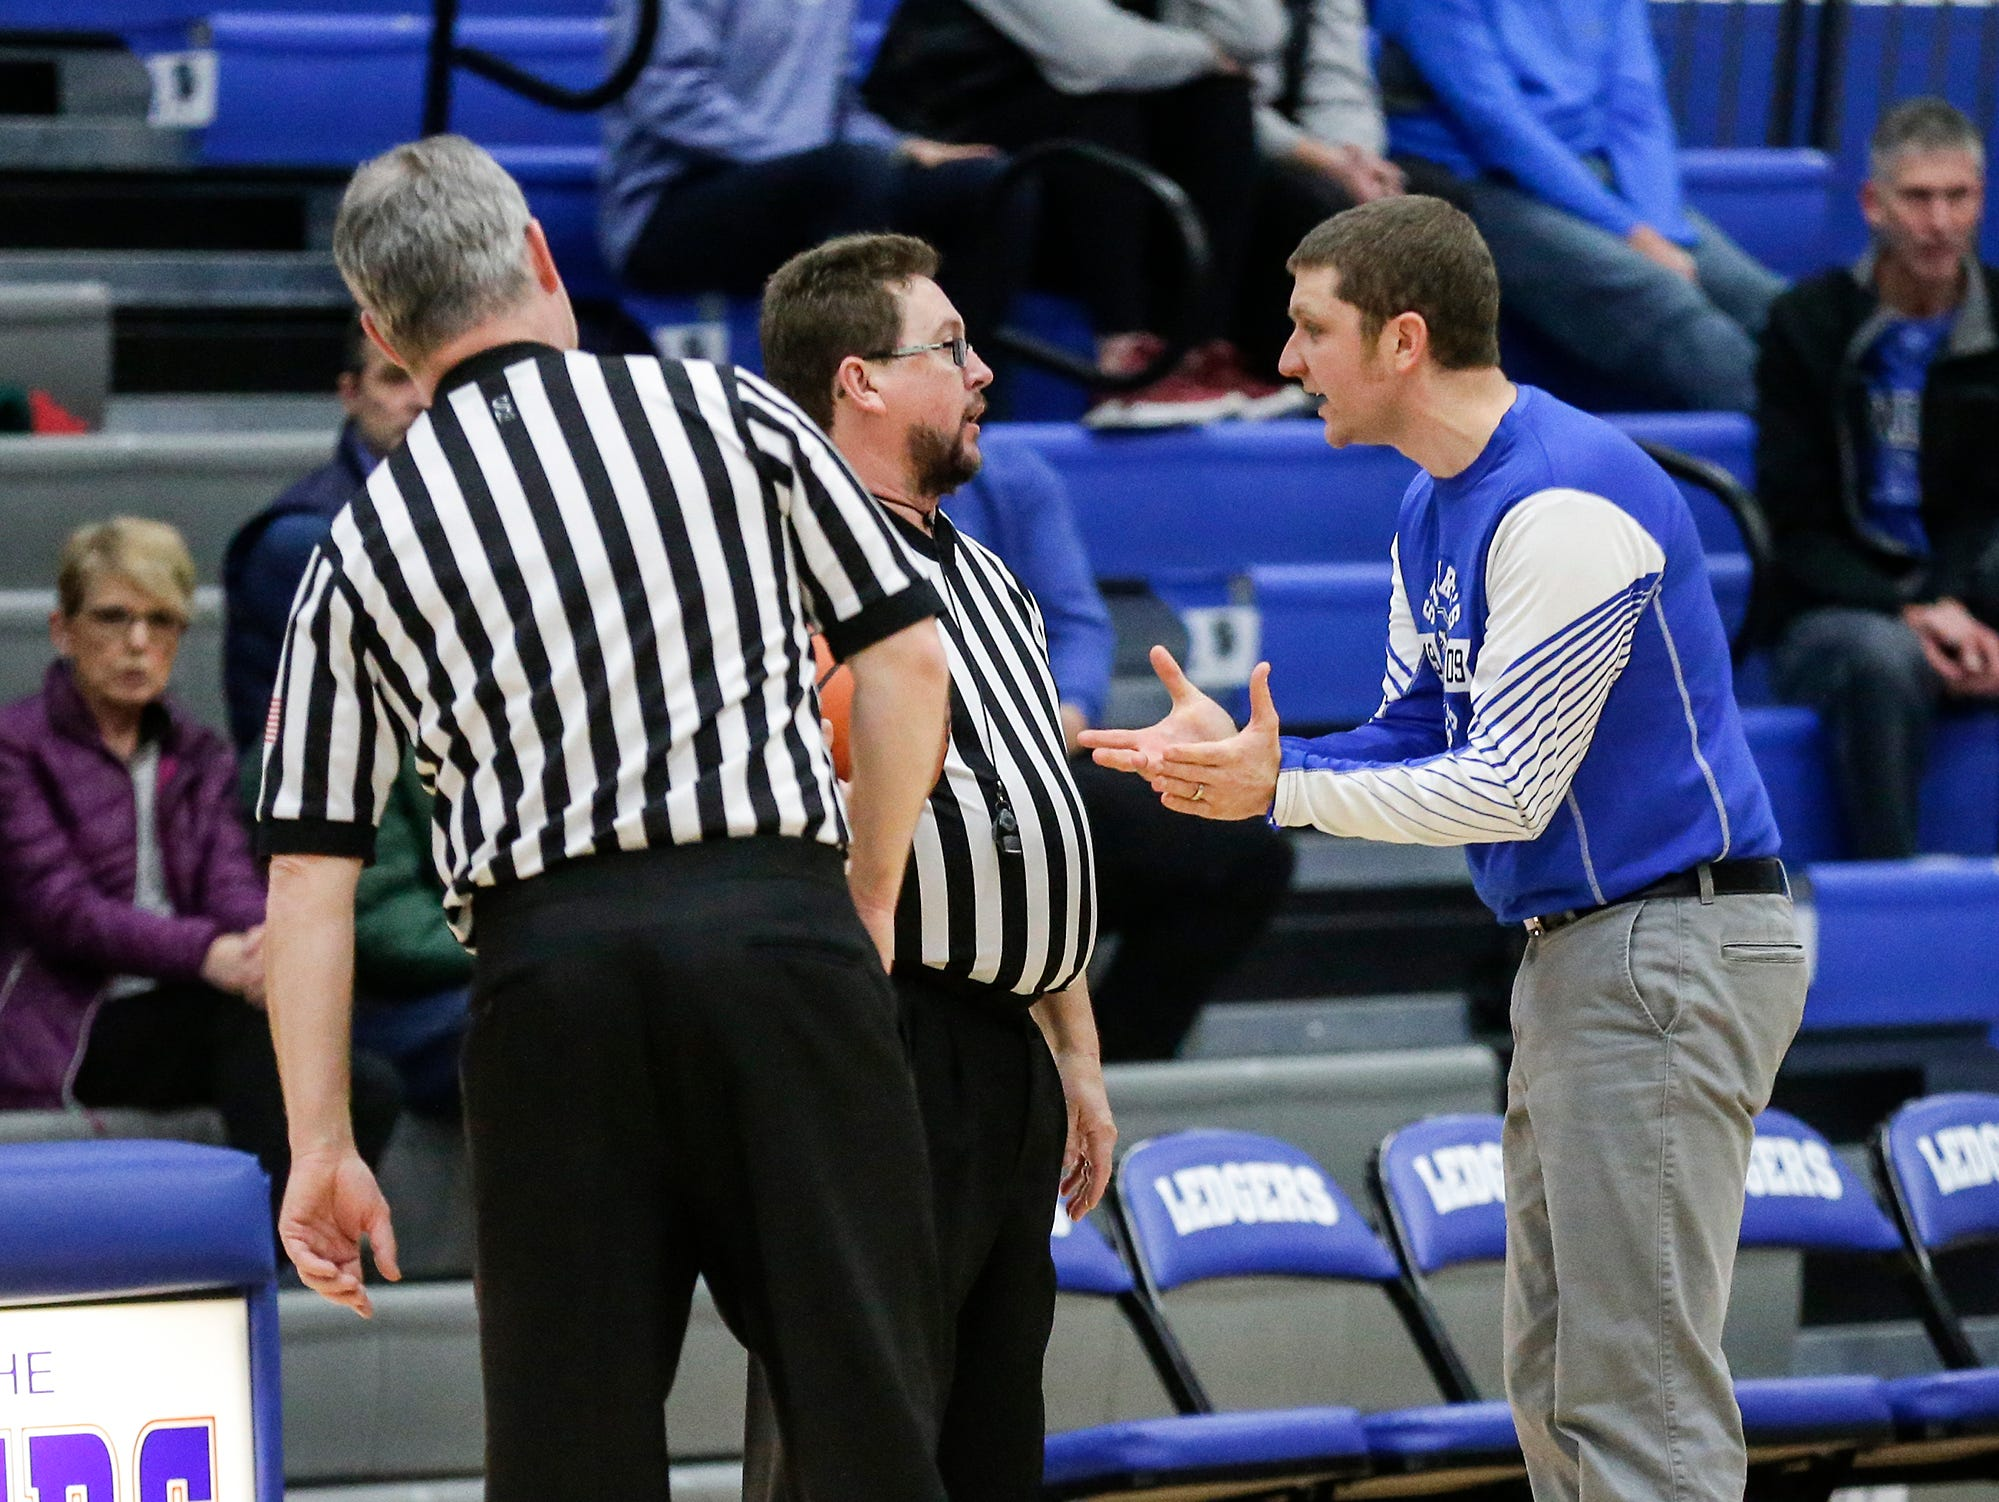 St. Mary's Springs Academy girls basketball coach Mitch Redig questions a call from a referee during their game against Winnebago Lutheran Academy Tuesday, December 18, 2018 in Fond du Lac. Winnebago Lutheran Academy won the game 58-54. Doug Raflik/USA TODAY NETWORK-Wisconsin